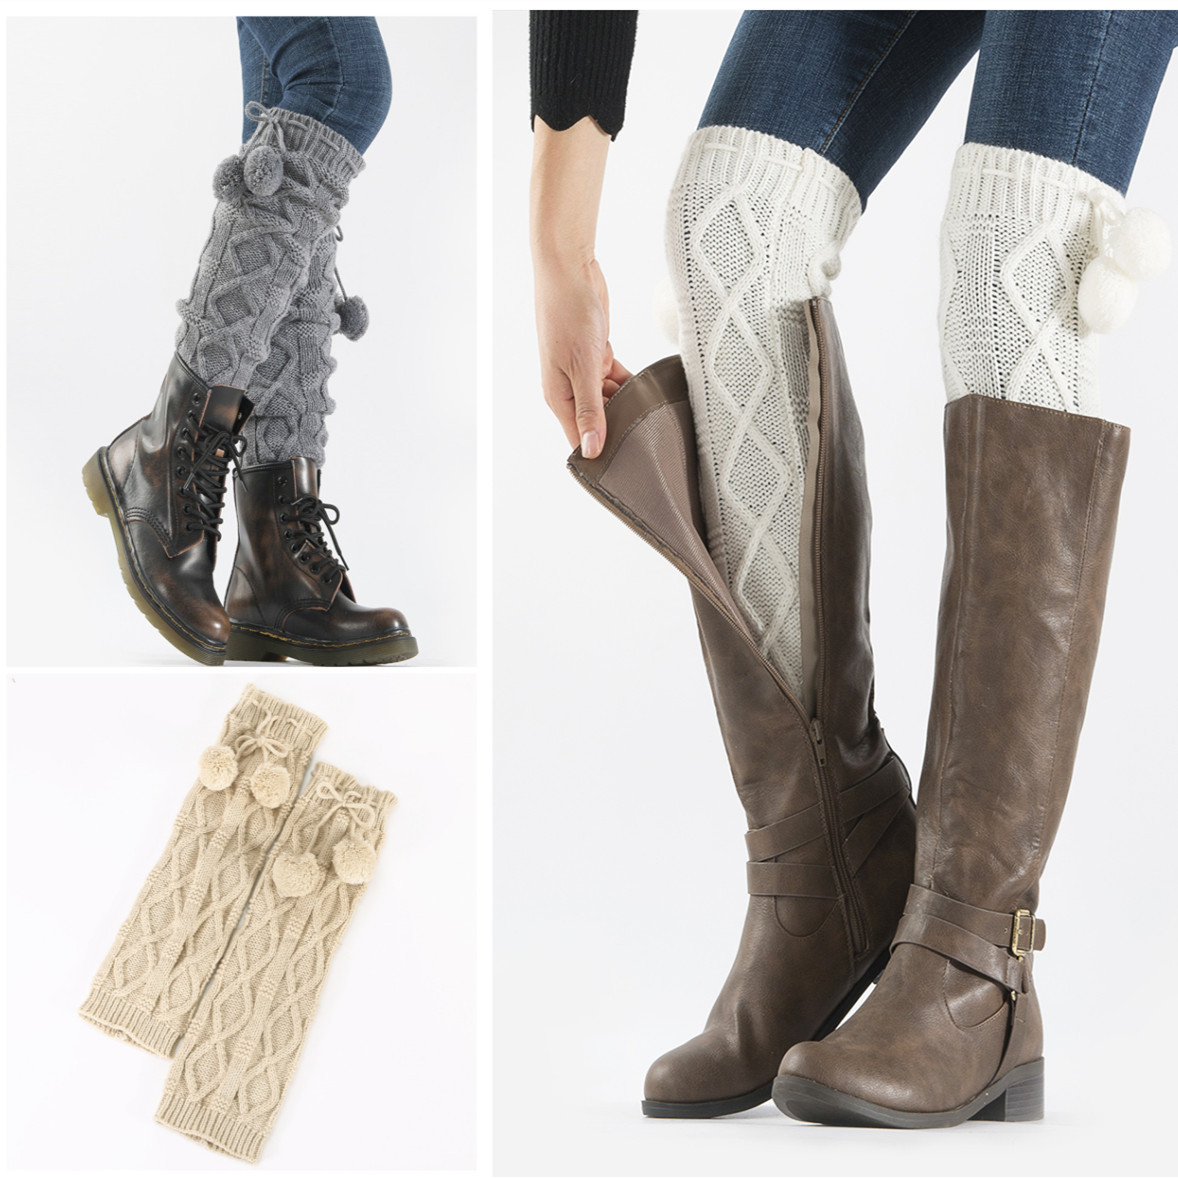 Fashion New Knitted Jacquard Diamond Hanging Ball Socks Set Female Students Autumn And Winter Pile Wool Leg Boots Set